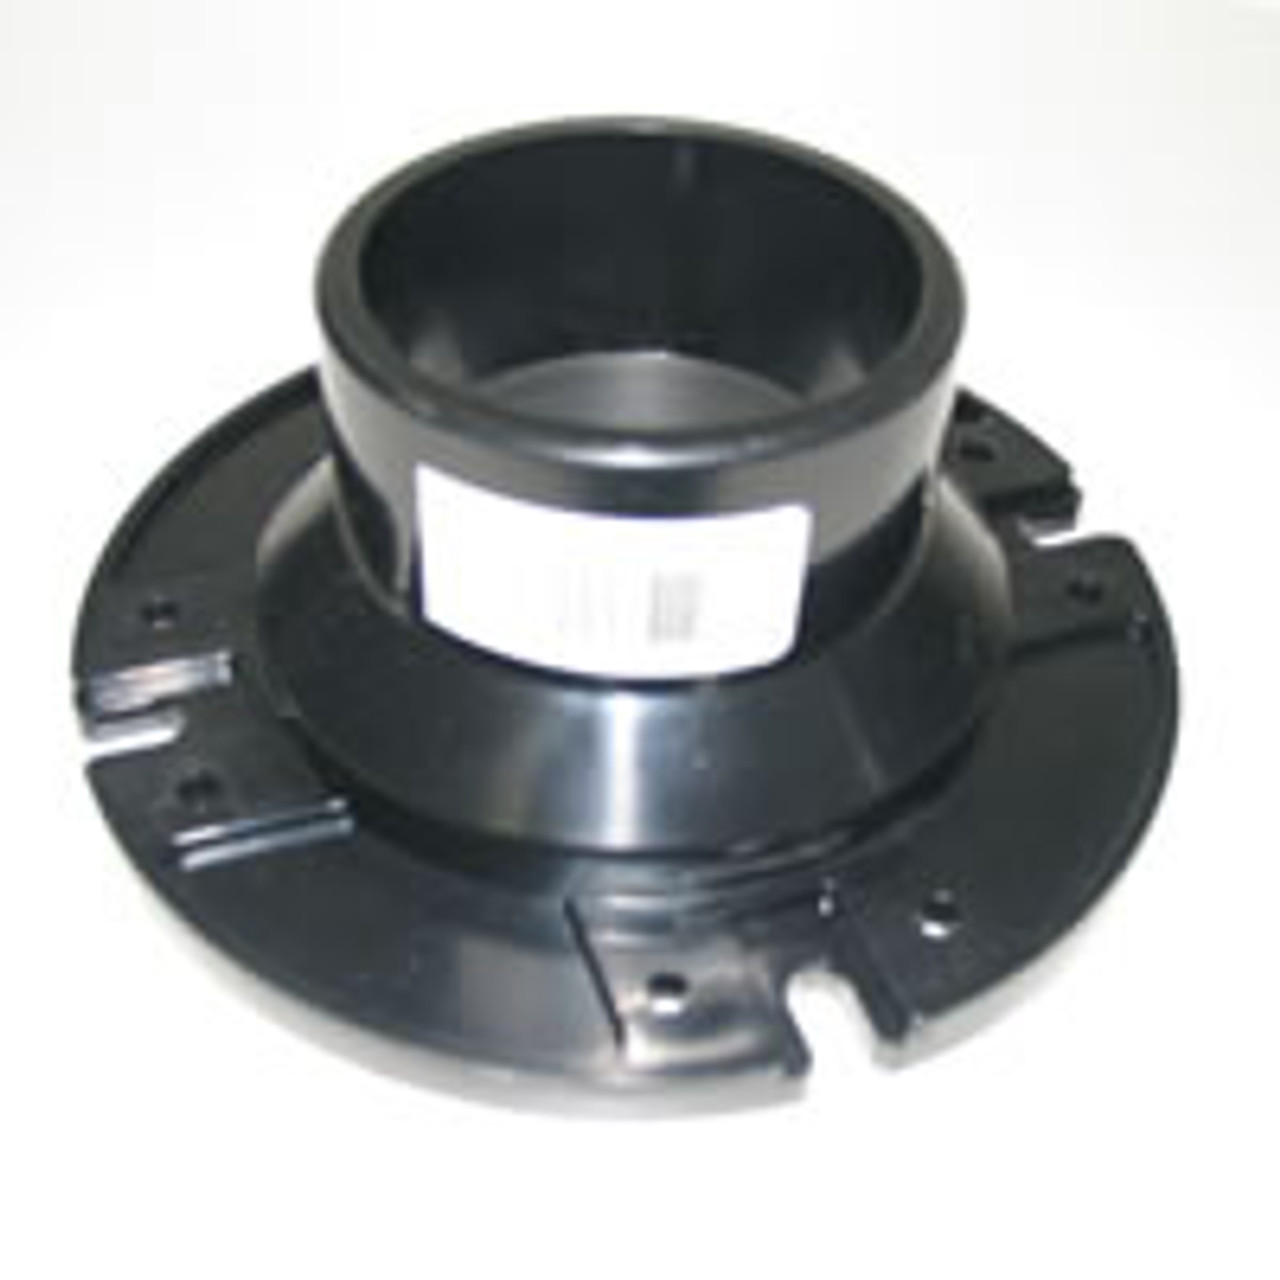 "Toilet mounting floor flange.  (3"" PVC fitting slip over)"